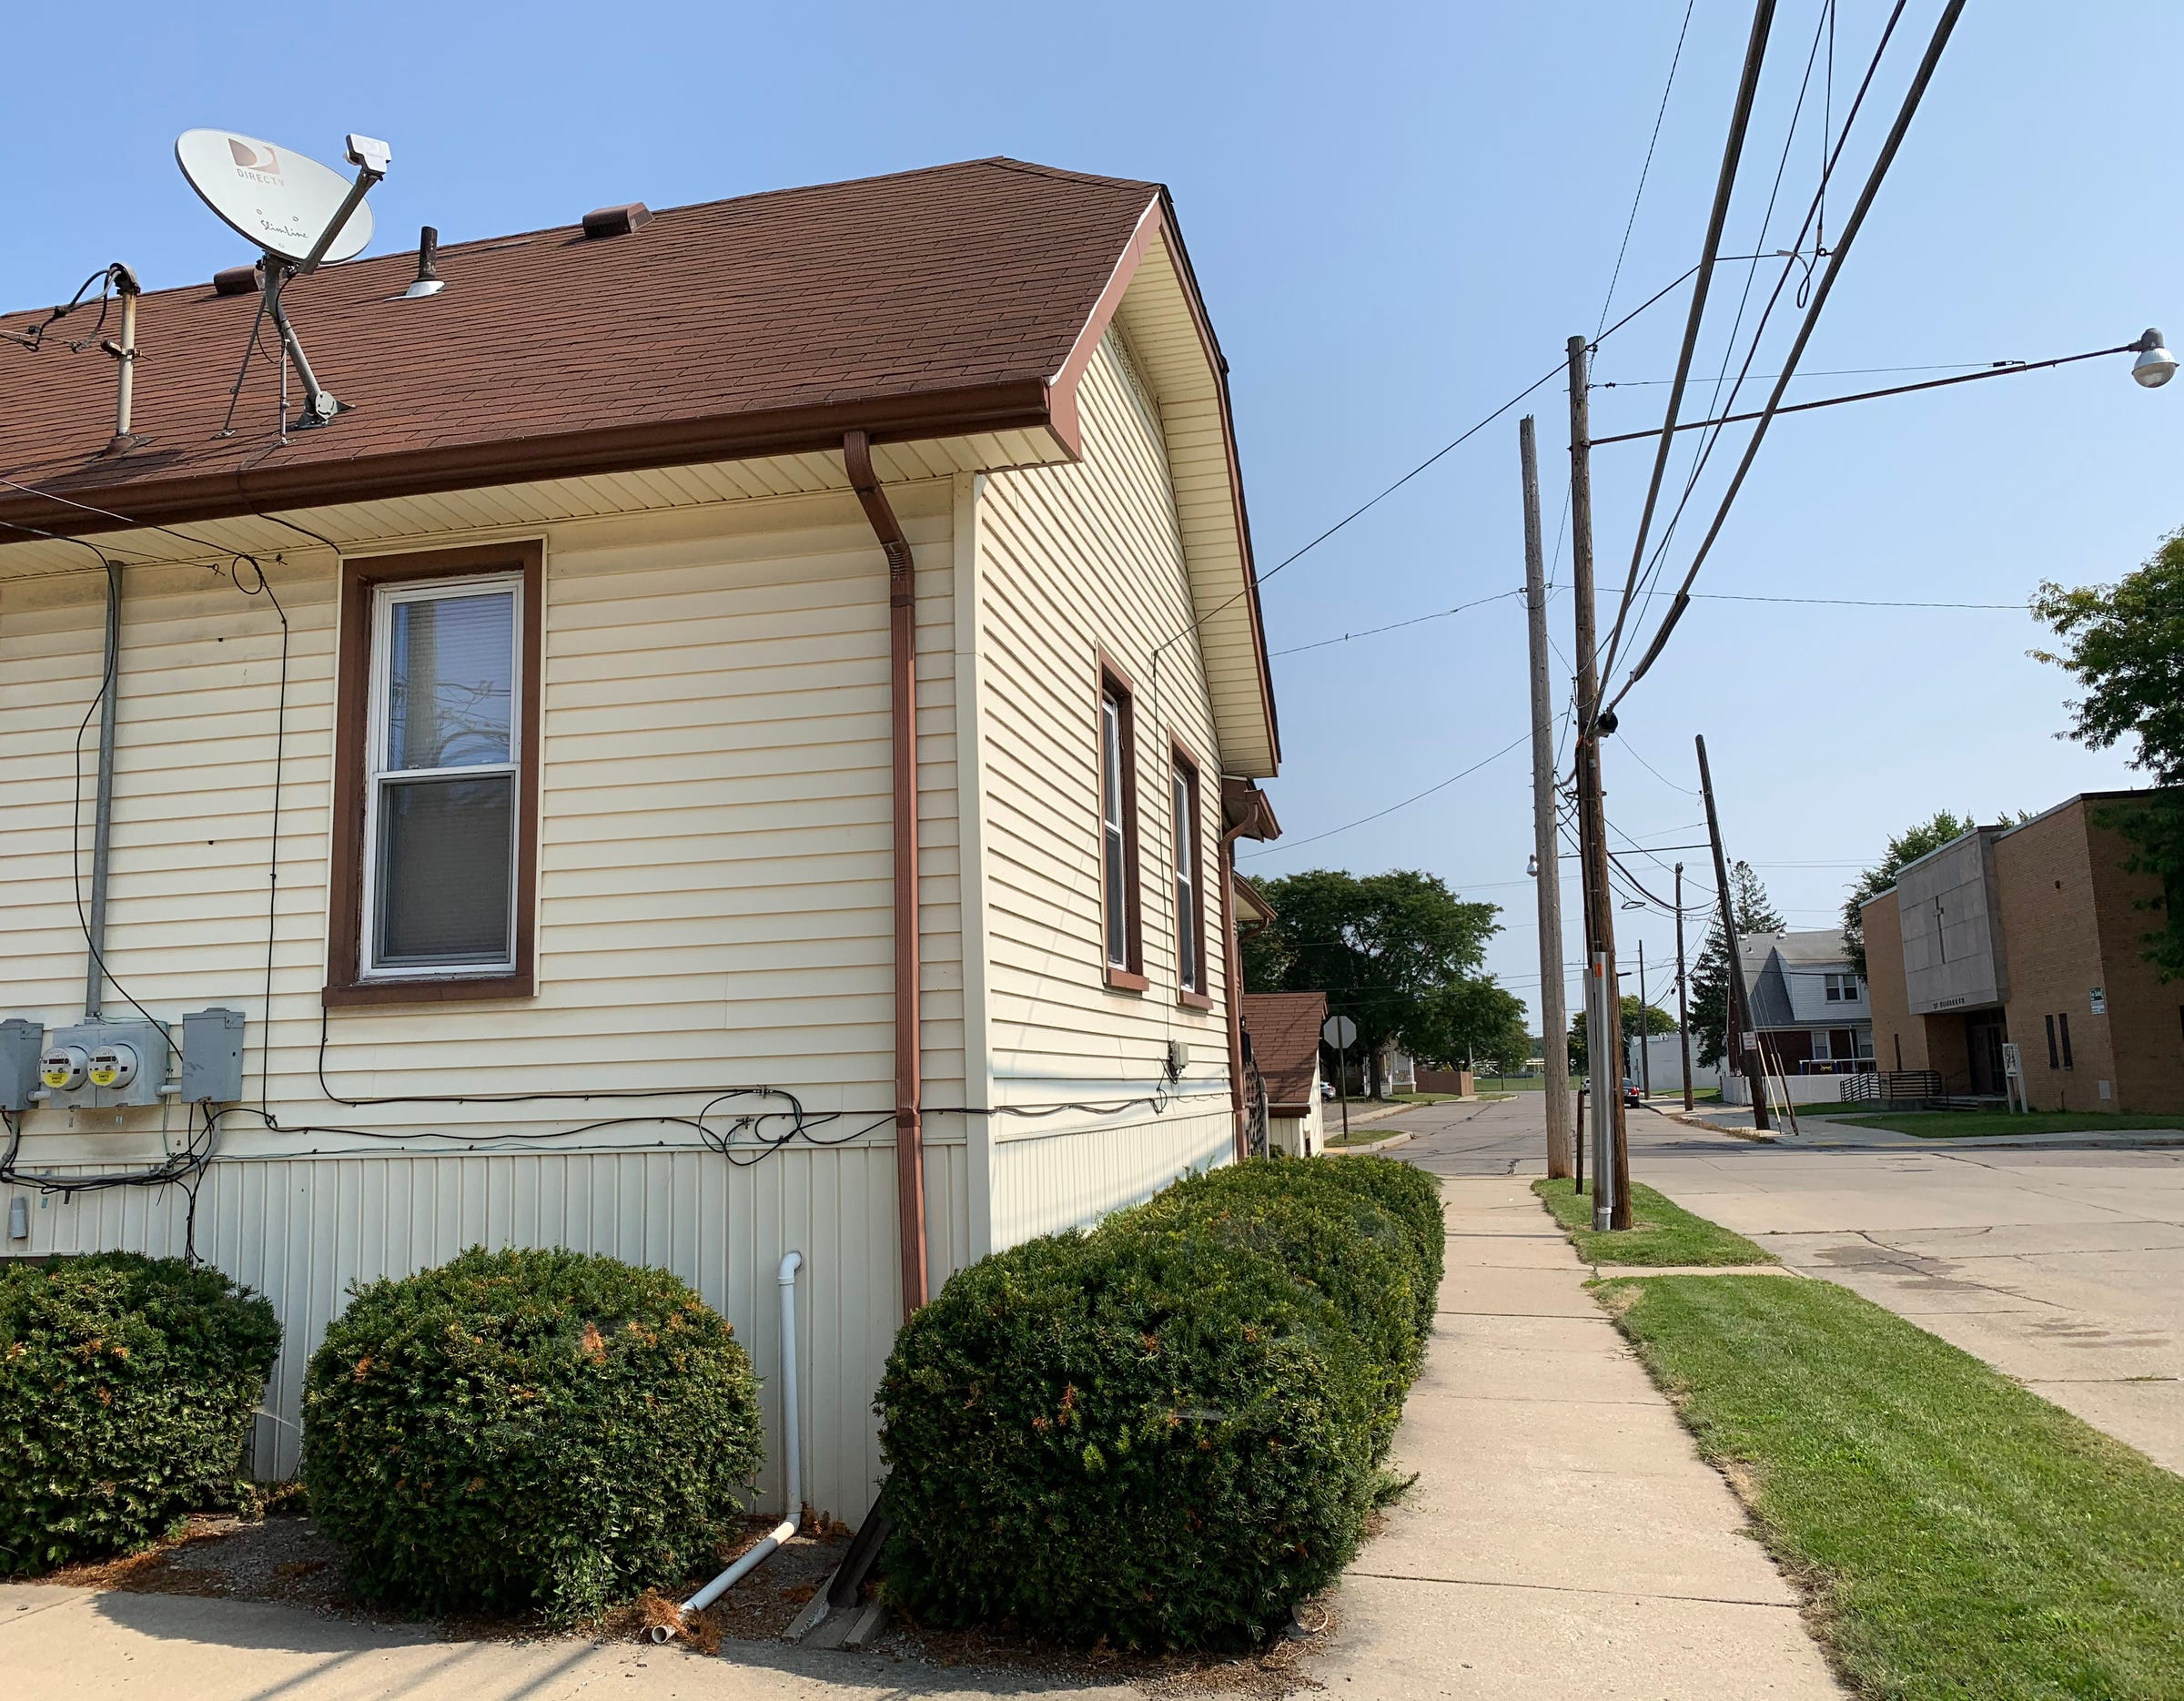 Austin Burnett died in his Wyandotte apartment on April 28, 2020 of an overdose. His brothers entered his apartment through the window on the left when Burnett was unresponsive to texts and phone calls.